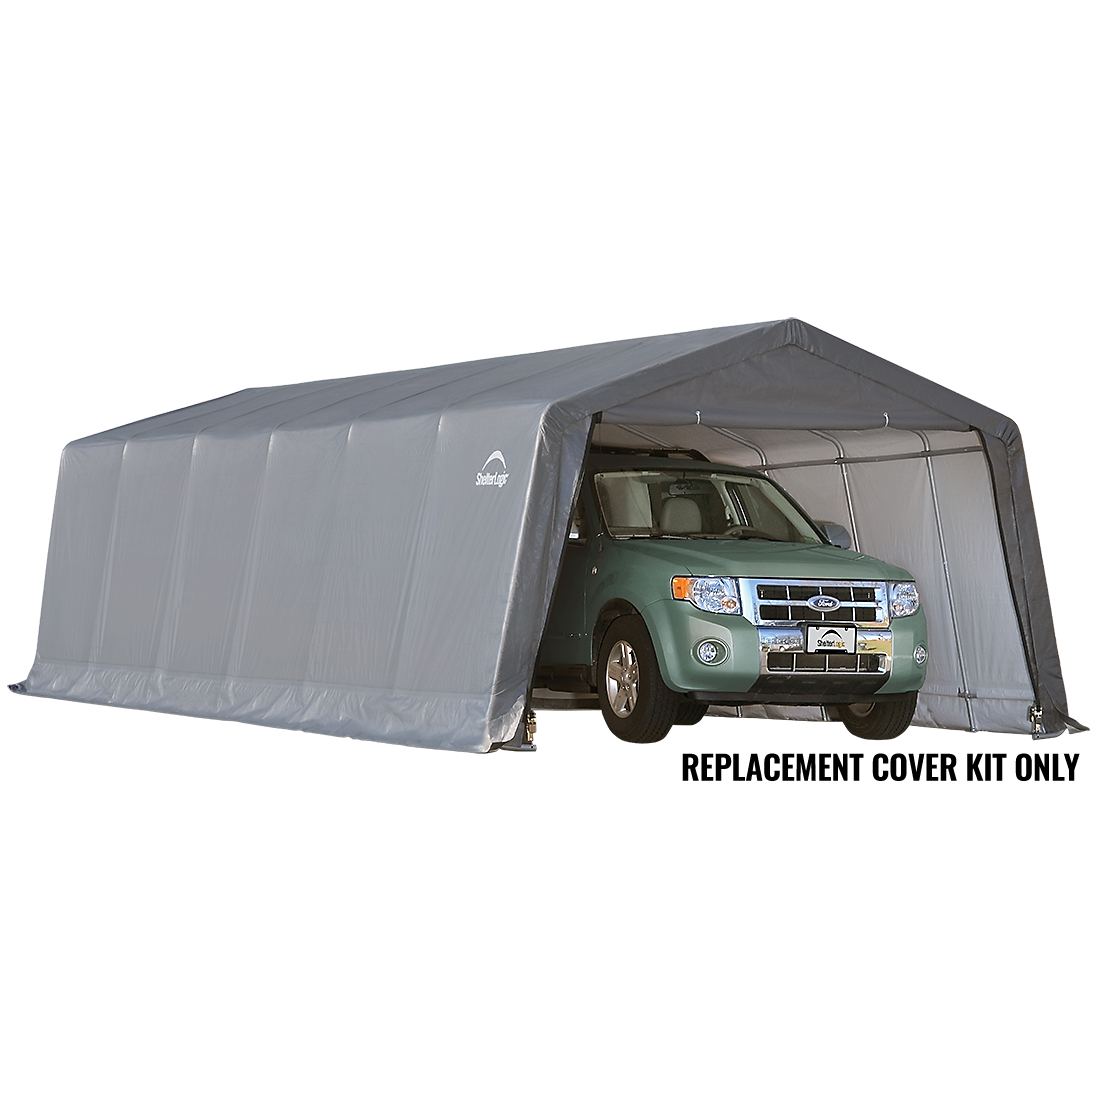 Replacement Cover Kit for the Garage-in-a-Box Peak 12 x 24 x 8 ft.